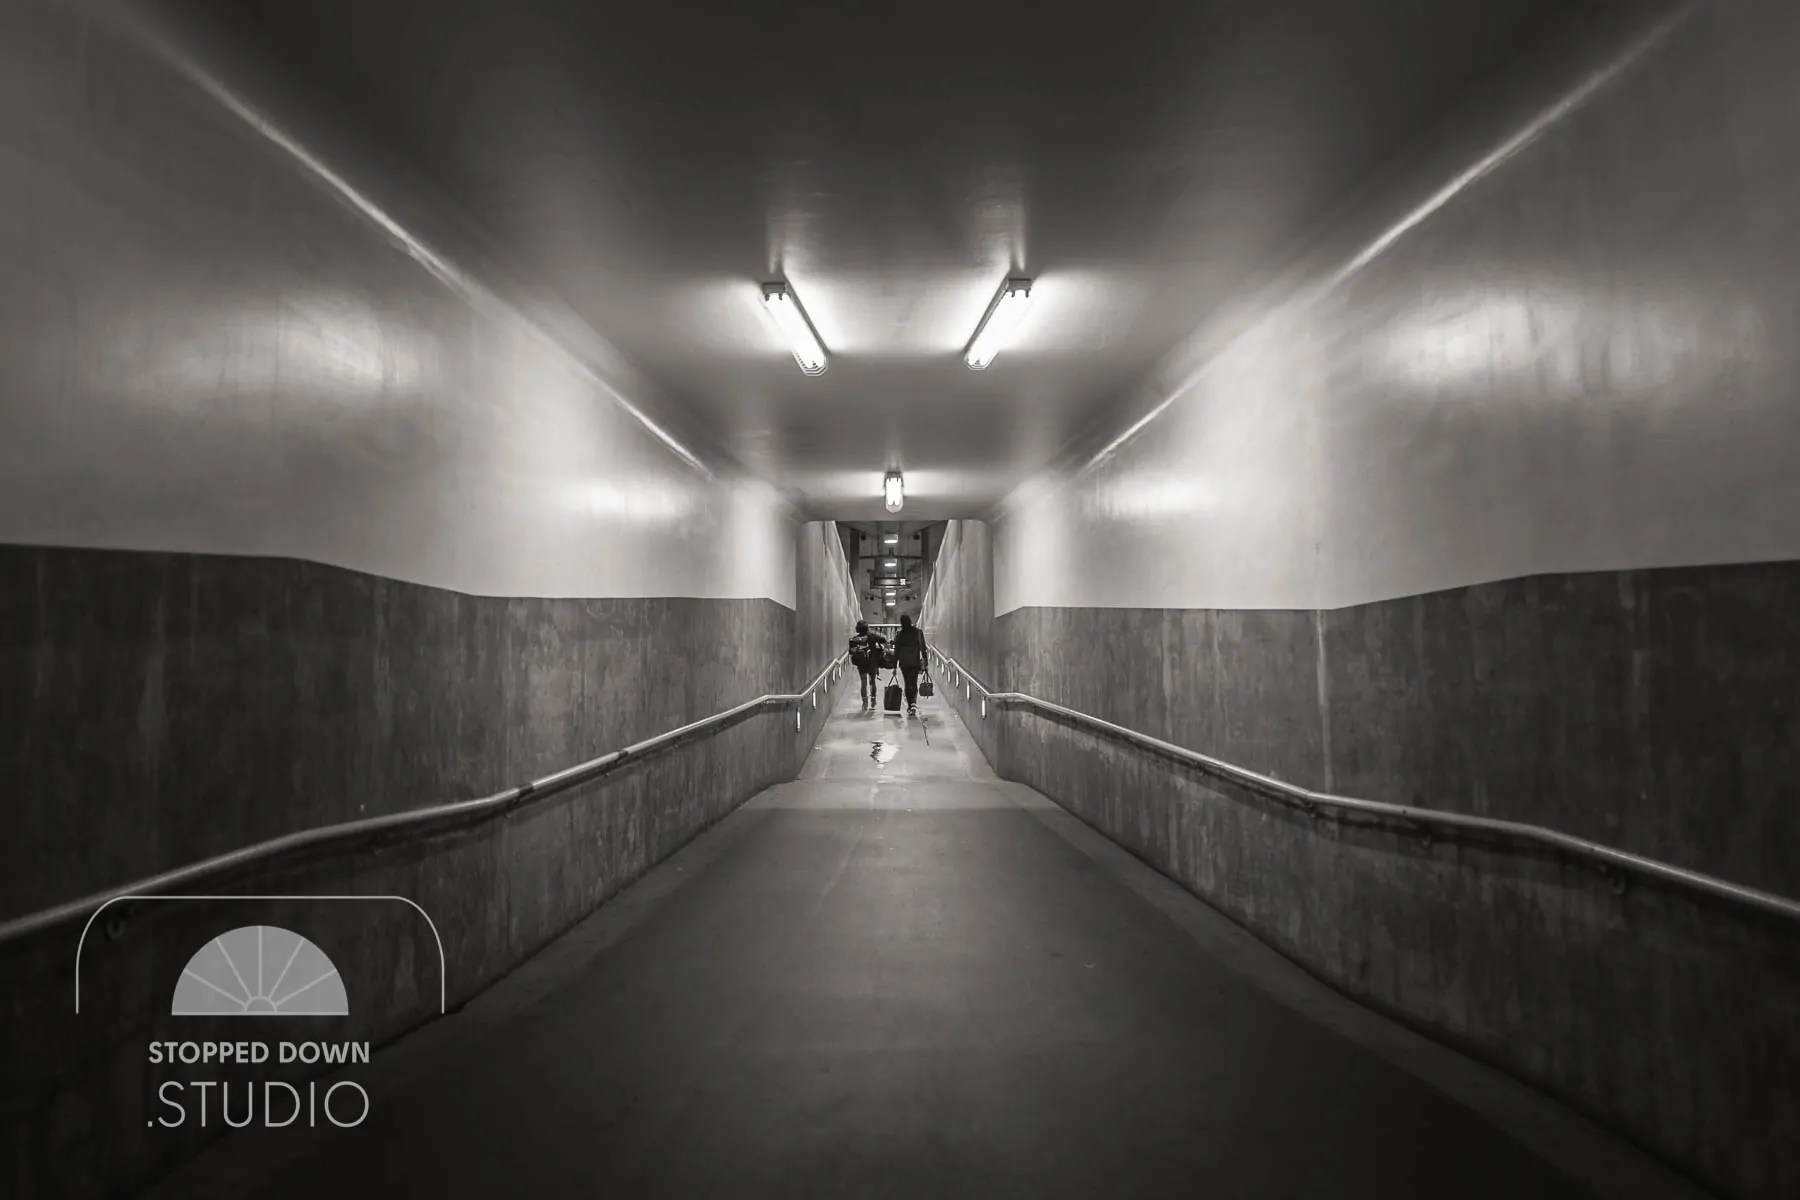 Union Station, LA - Somewhere you've never been - Stopped Down Studio